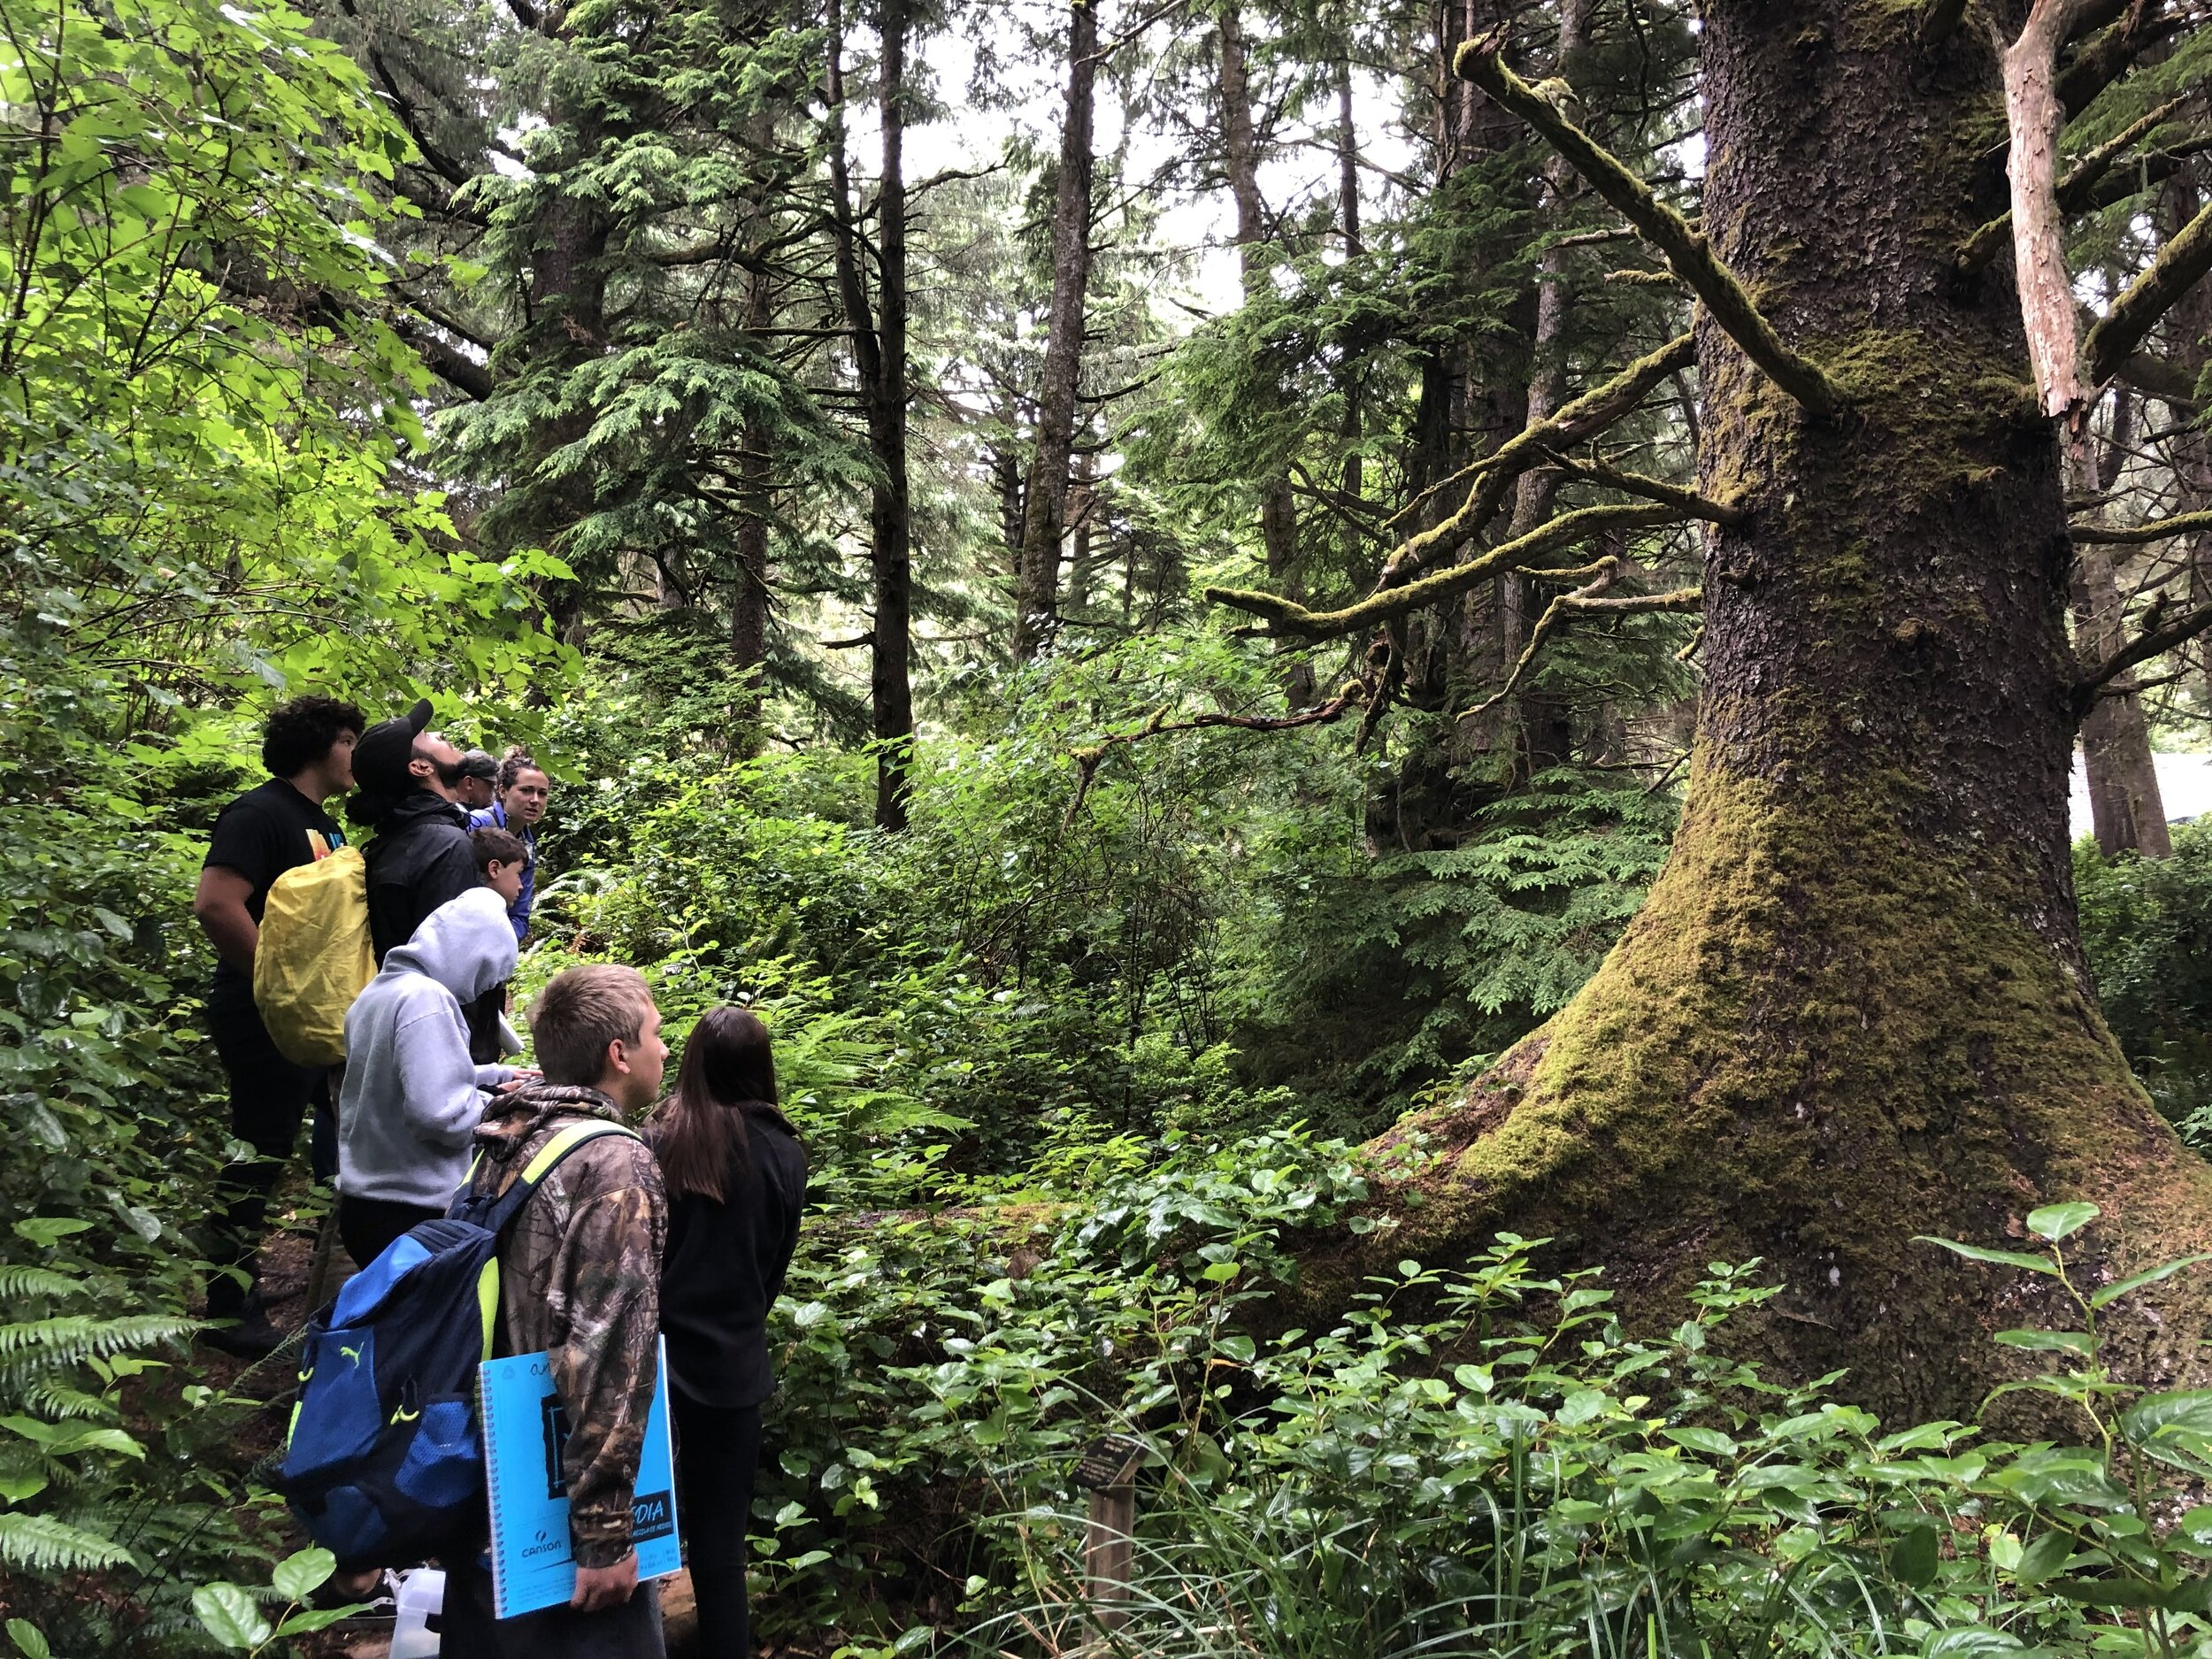 Nadja Quiroz with a group of youth on the Ya'Xaik Trail at Gerdemann Preserve near Yachats